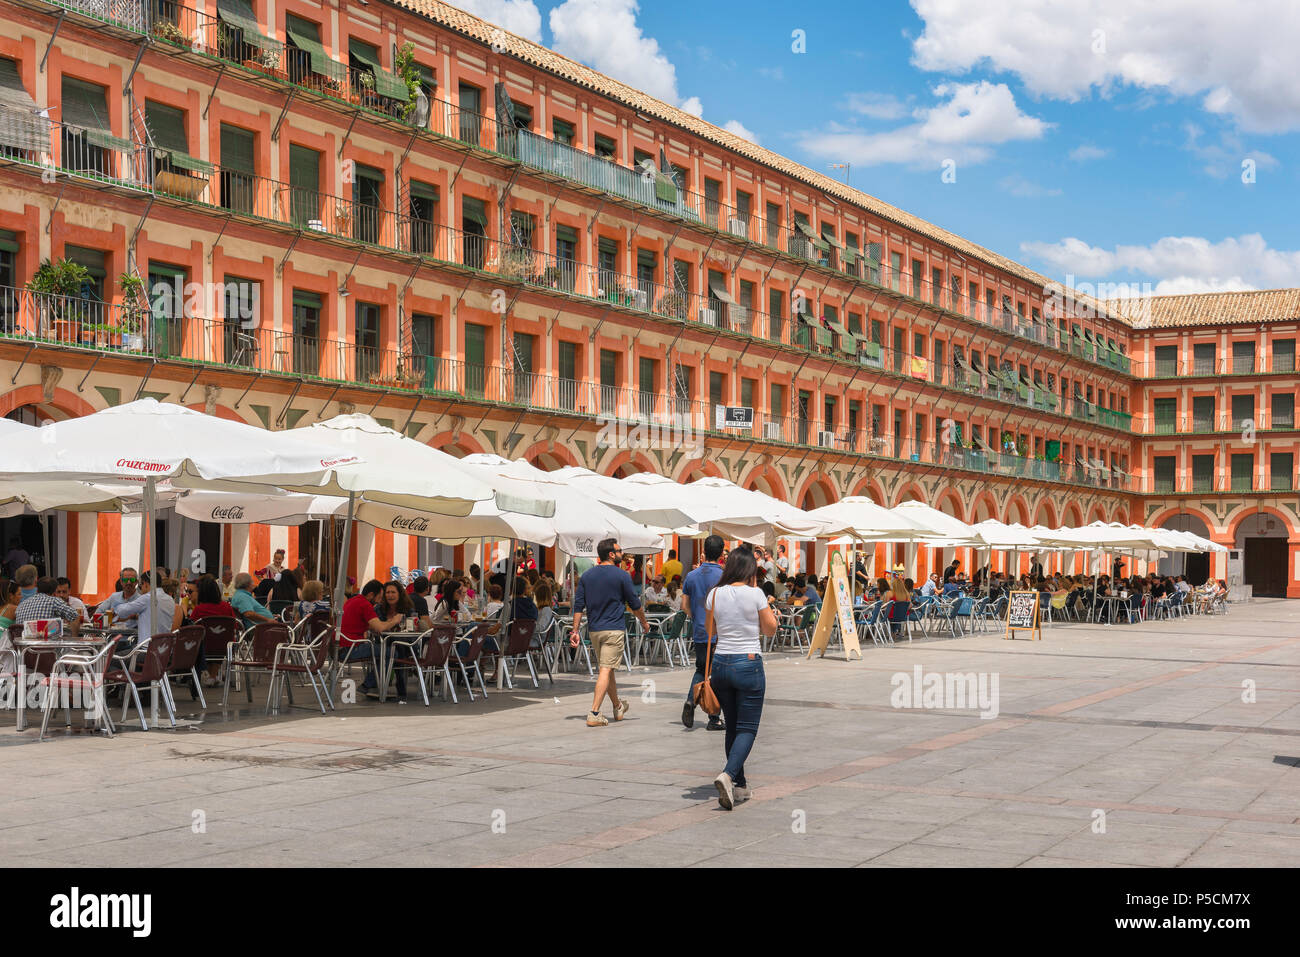 Plaza Corredera, view of the 17th Century Plaza de la Corredera in the center of Cordoba old town on a summer afternoon, Cordova, Andalucia, Spain. - Stock Image